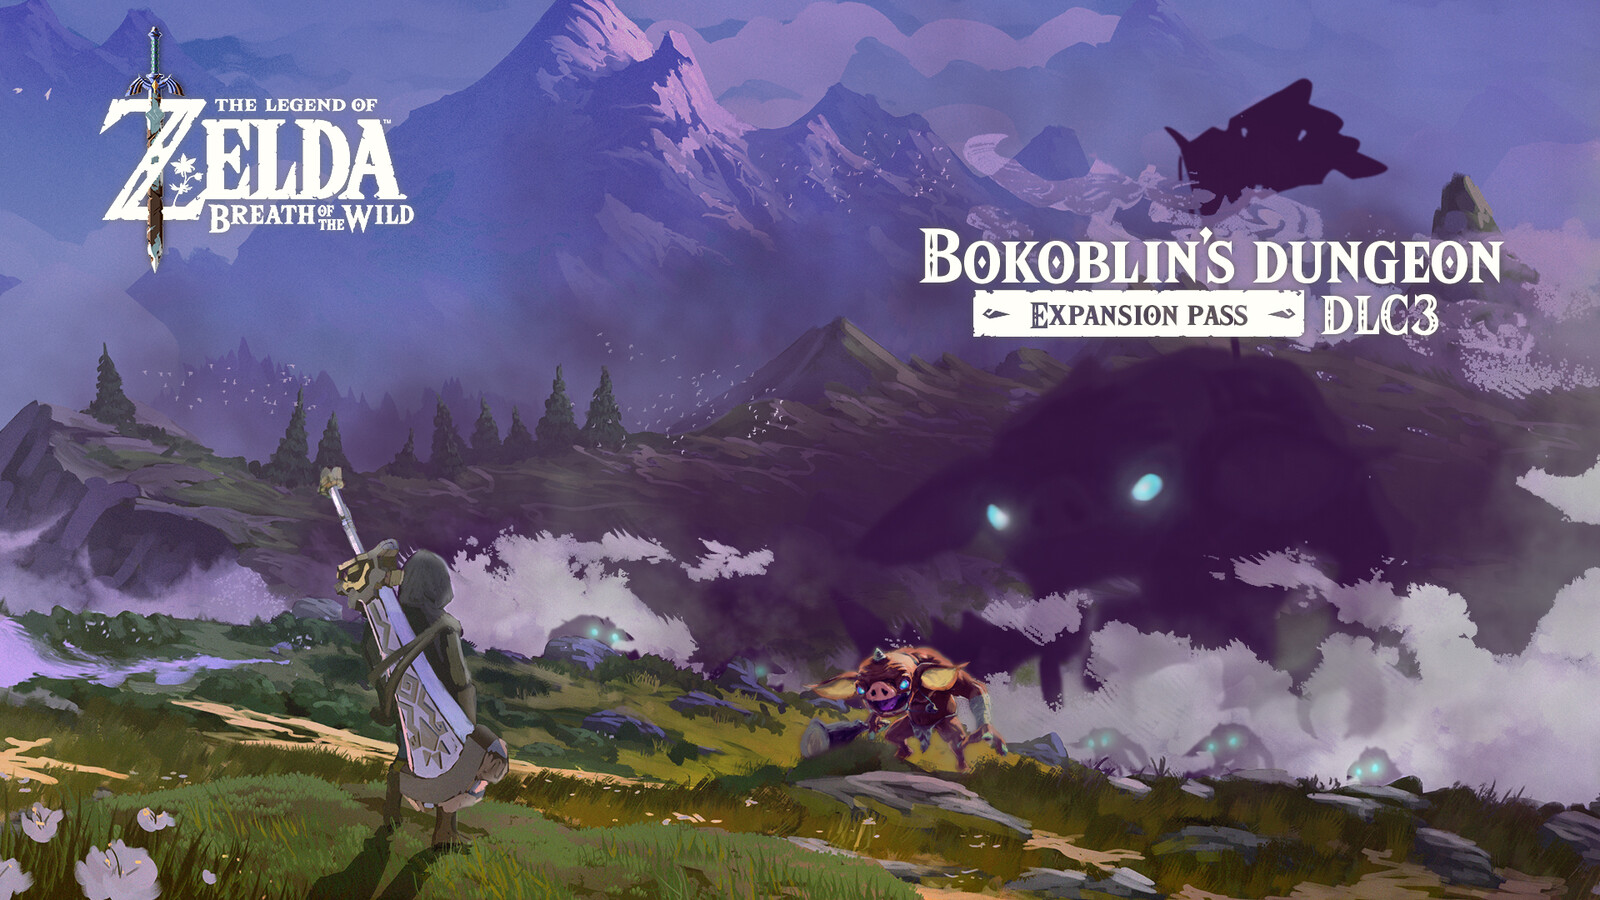 Key Art showcasing a mysterious and large bokoblin.